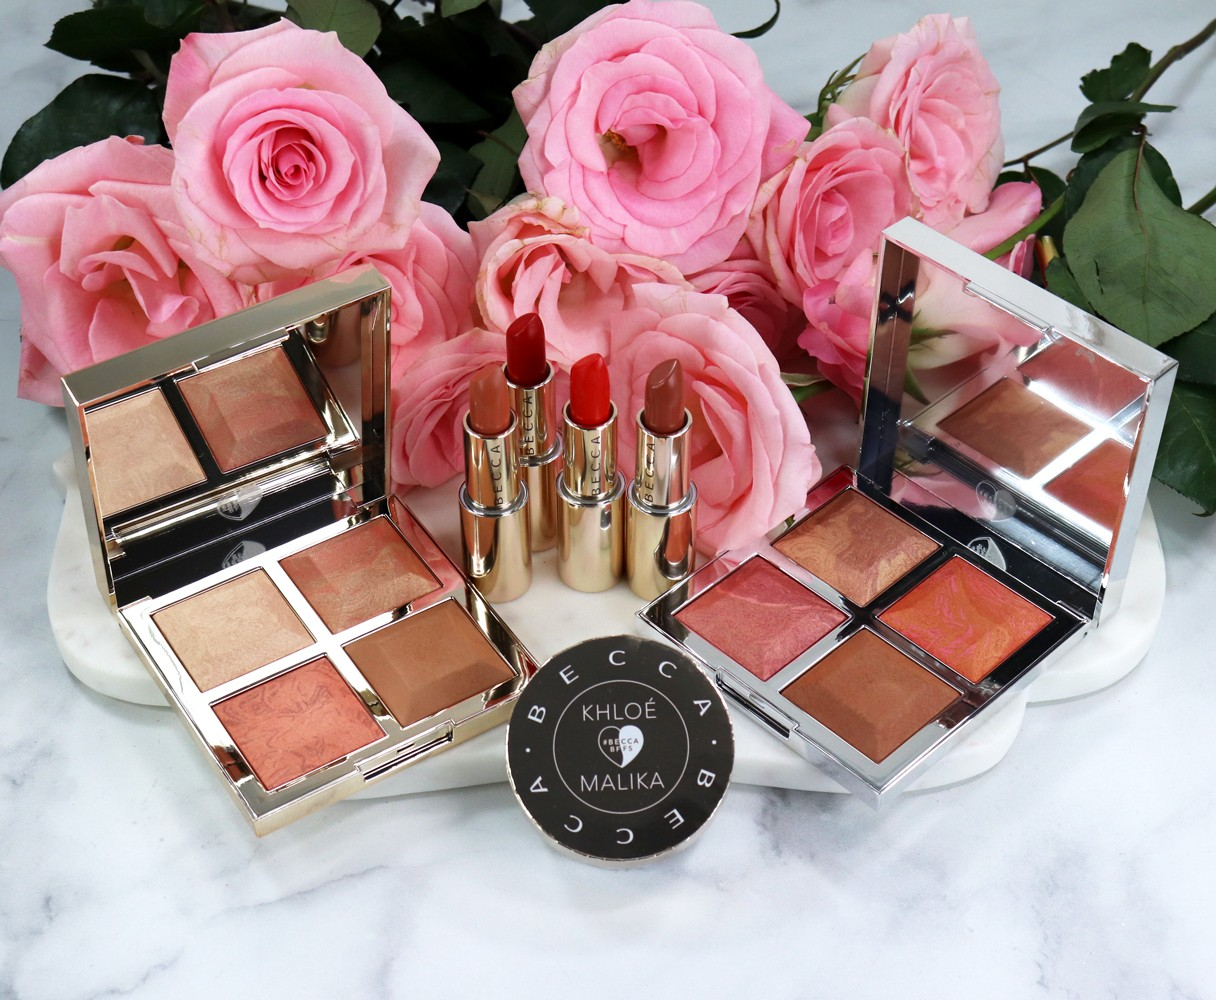 BECCA BFFs Khloe Kardashian and Malika Haqq Collection Review and Swatches